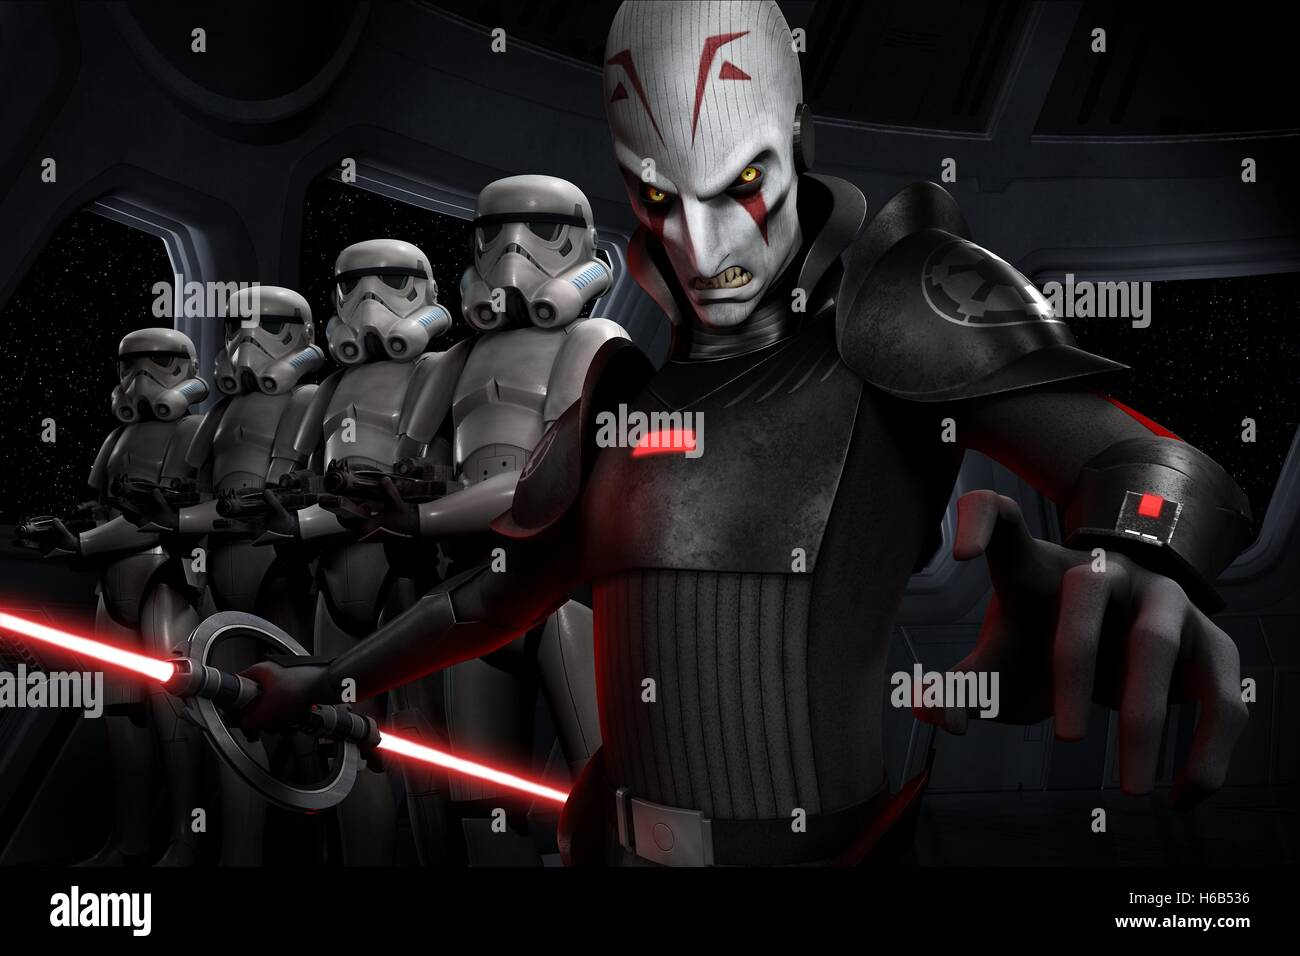 THE IMPERIAL INQUISITOR STAR WARS REBELS (2014) - Stock Image